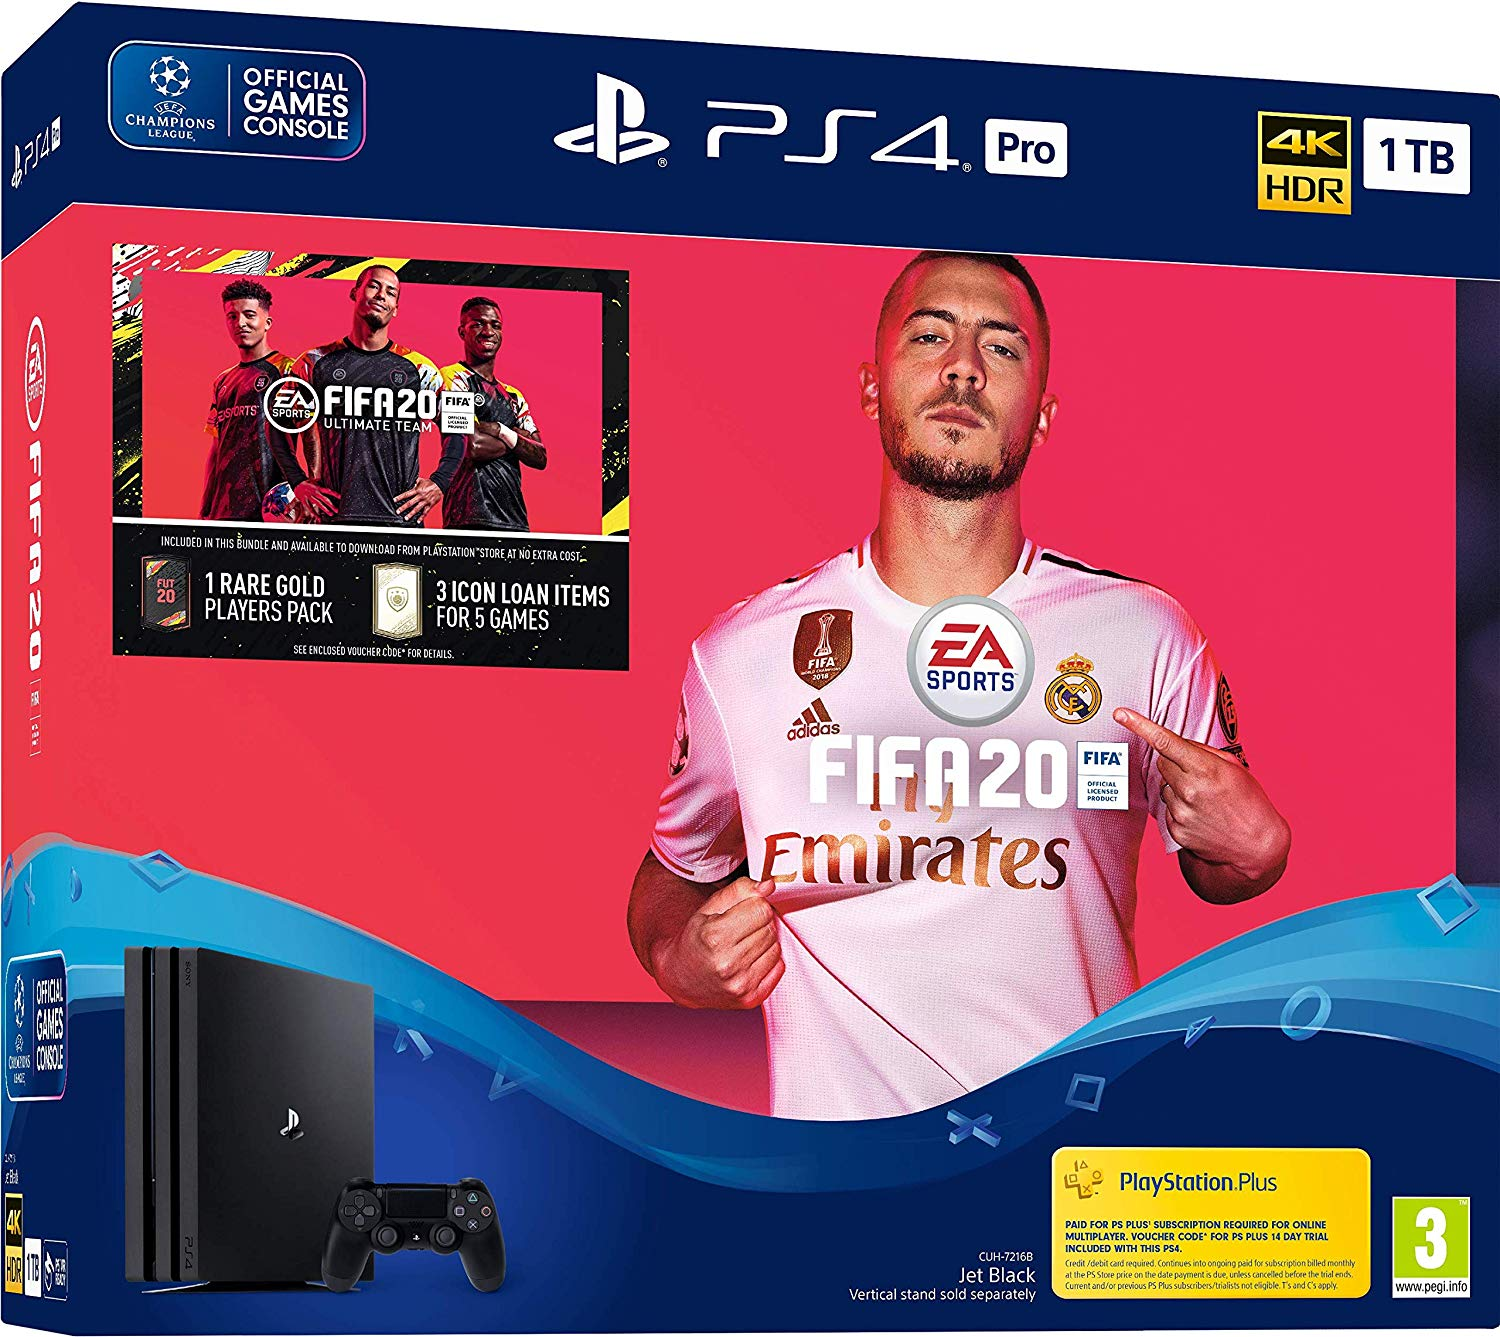 Sony PlayStation 4 Pro 1TB with FIFA 20 - Black (PS4)